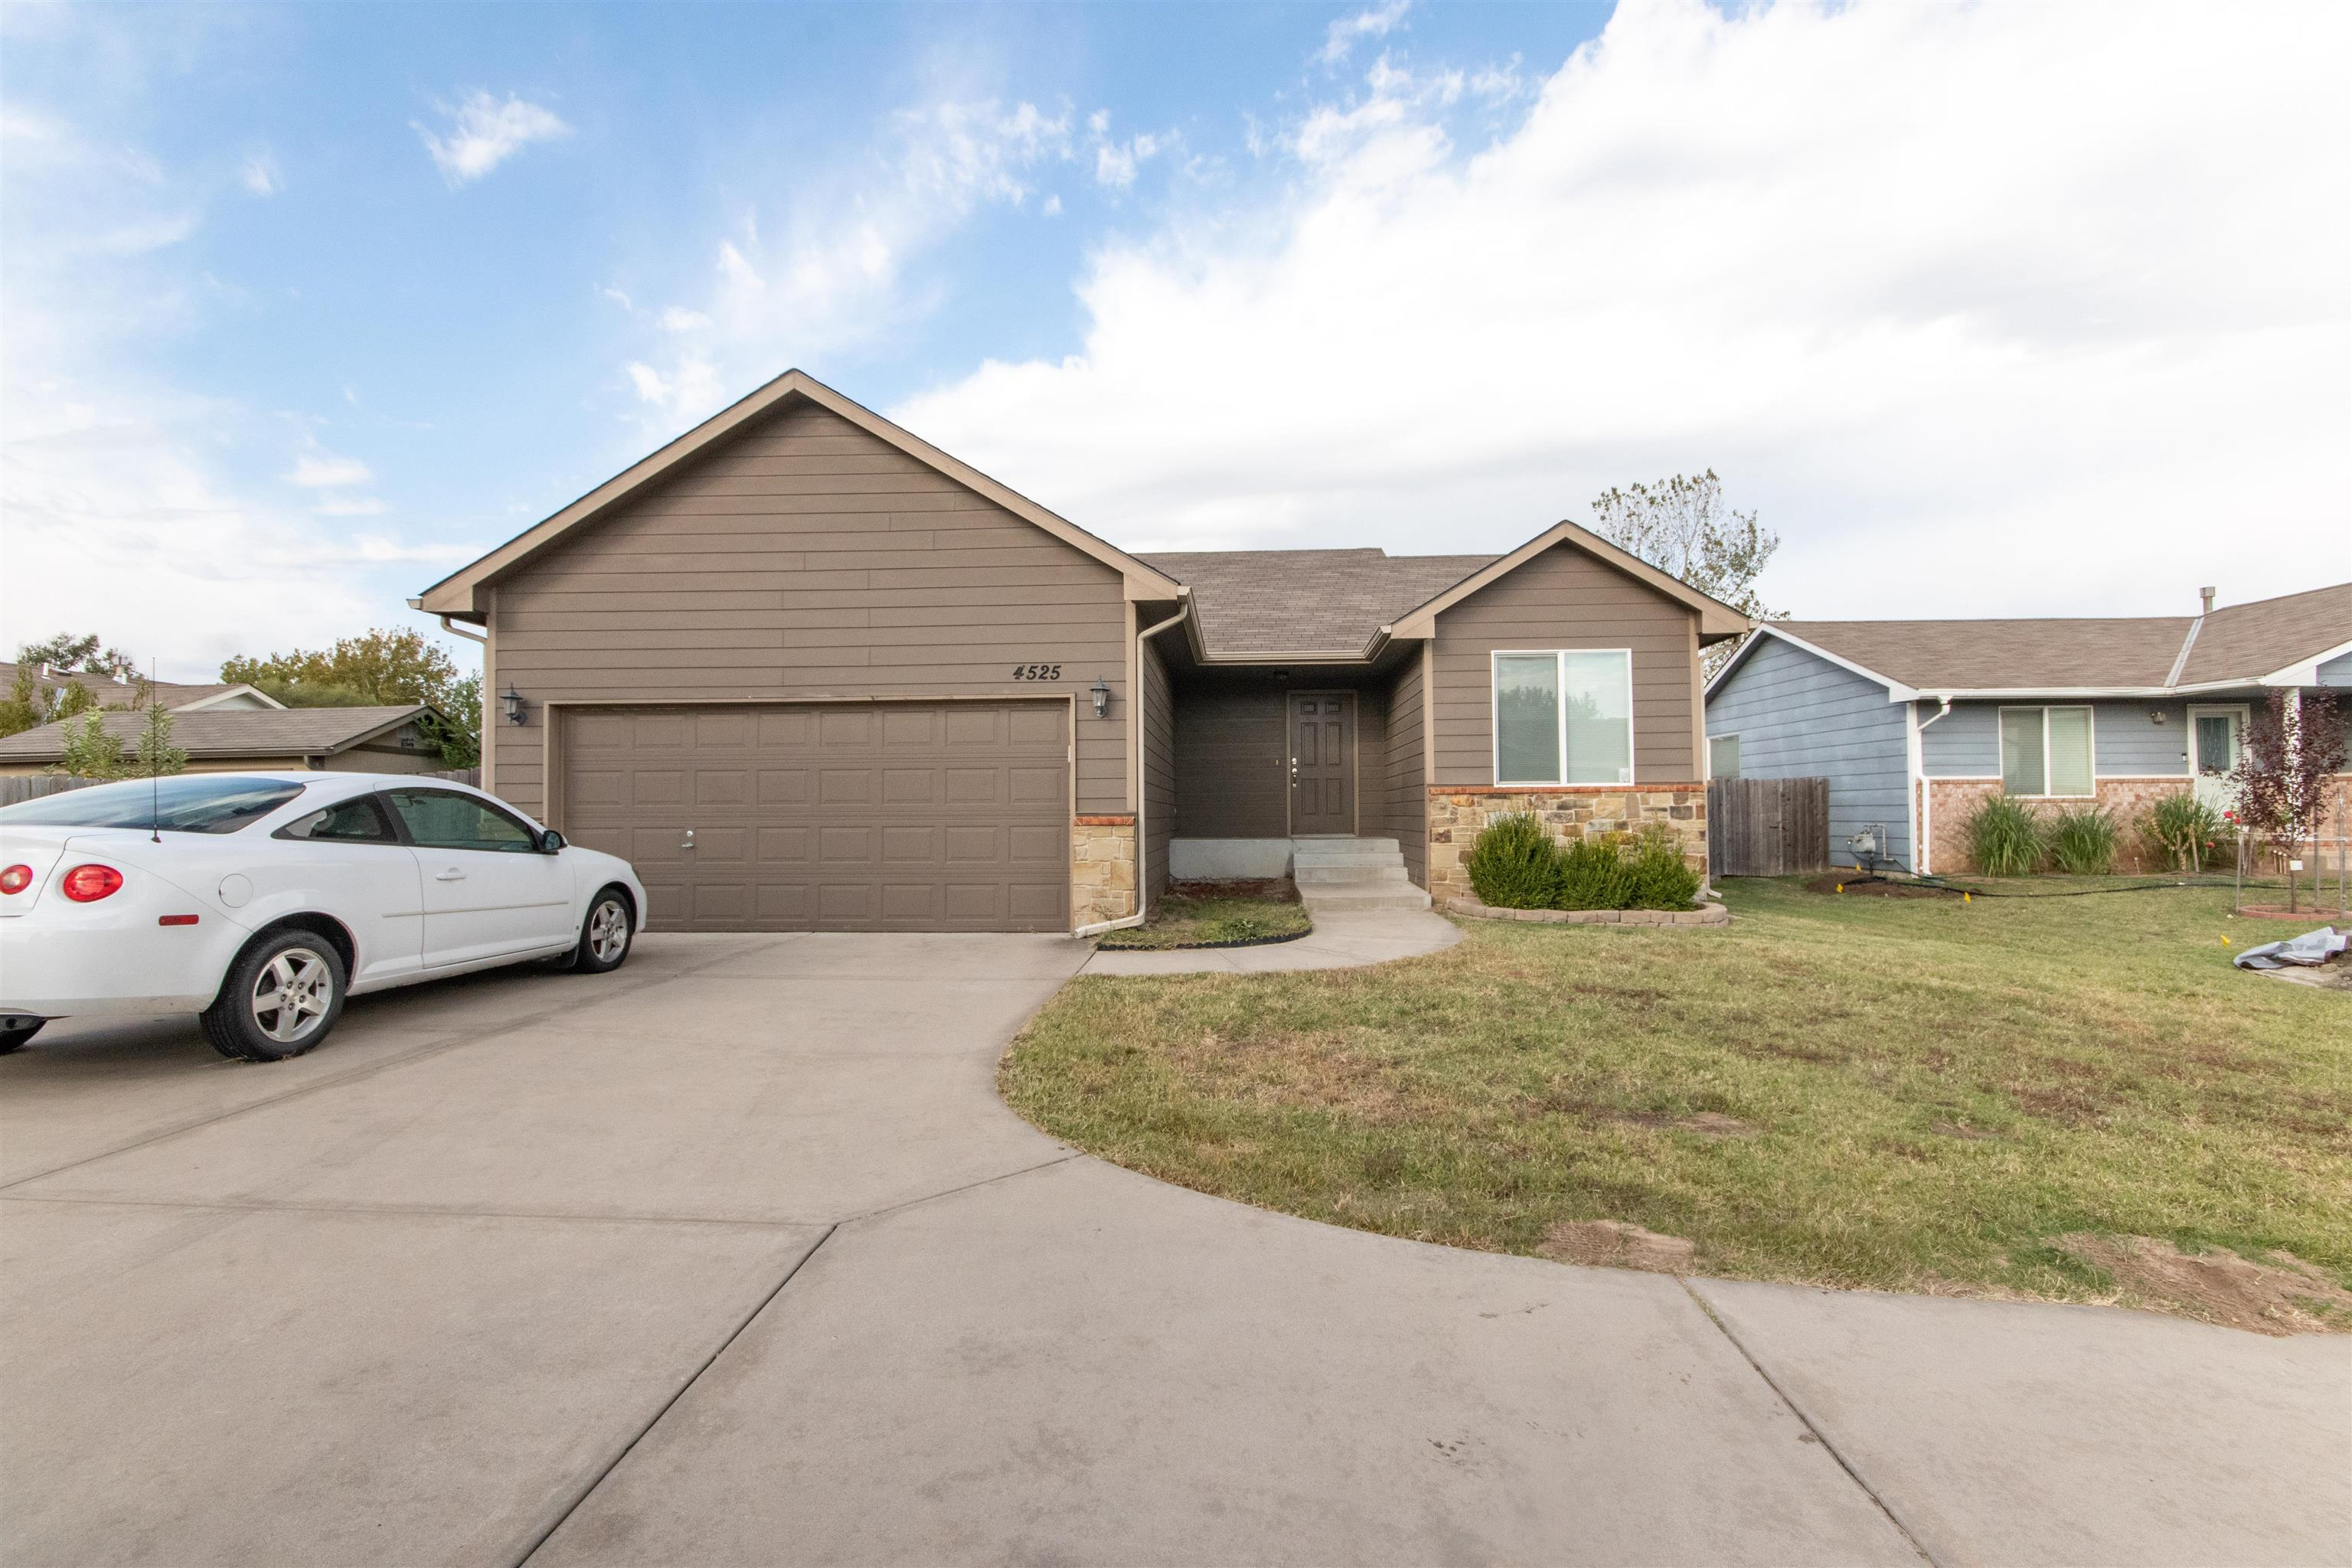 Don't miss out on this opportunity in south Wichita.  This 3 bedroom, 2 bathroom, 1042 square foot h